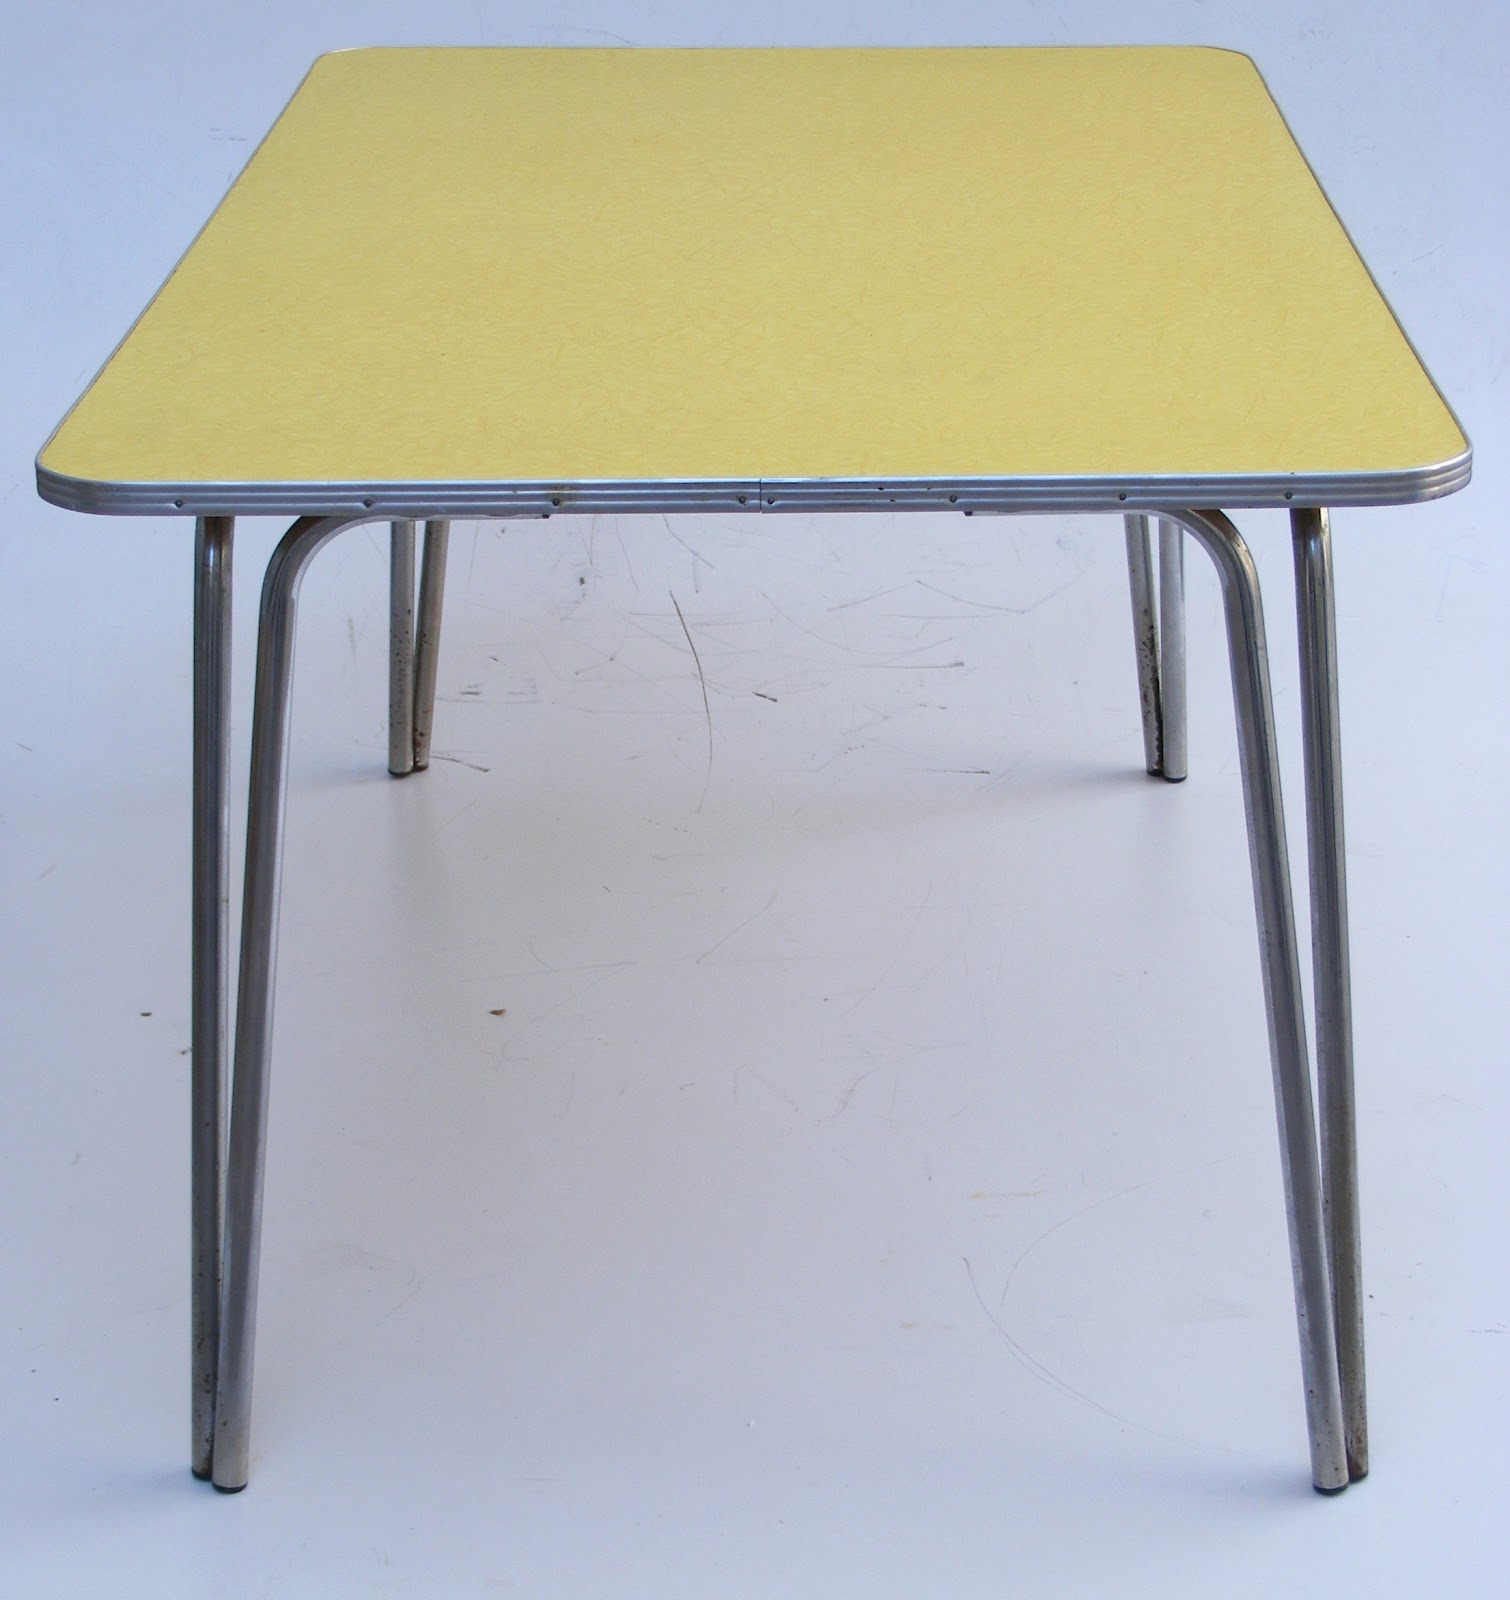 Vamp furniture may 2012 - Formica top kitchen tables ...